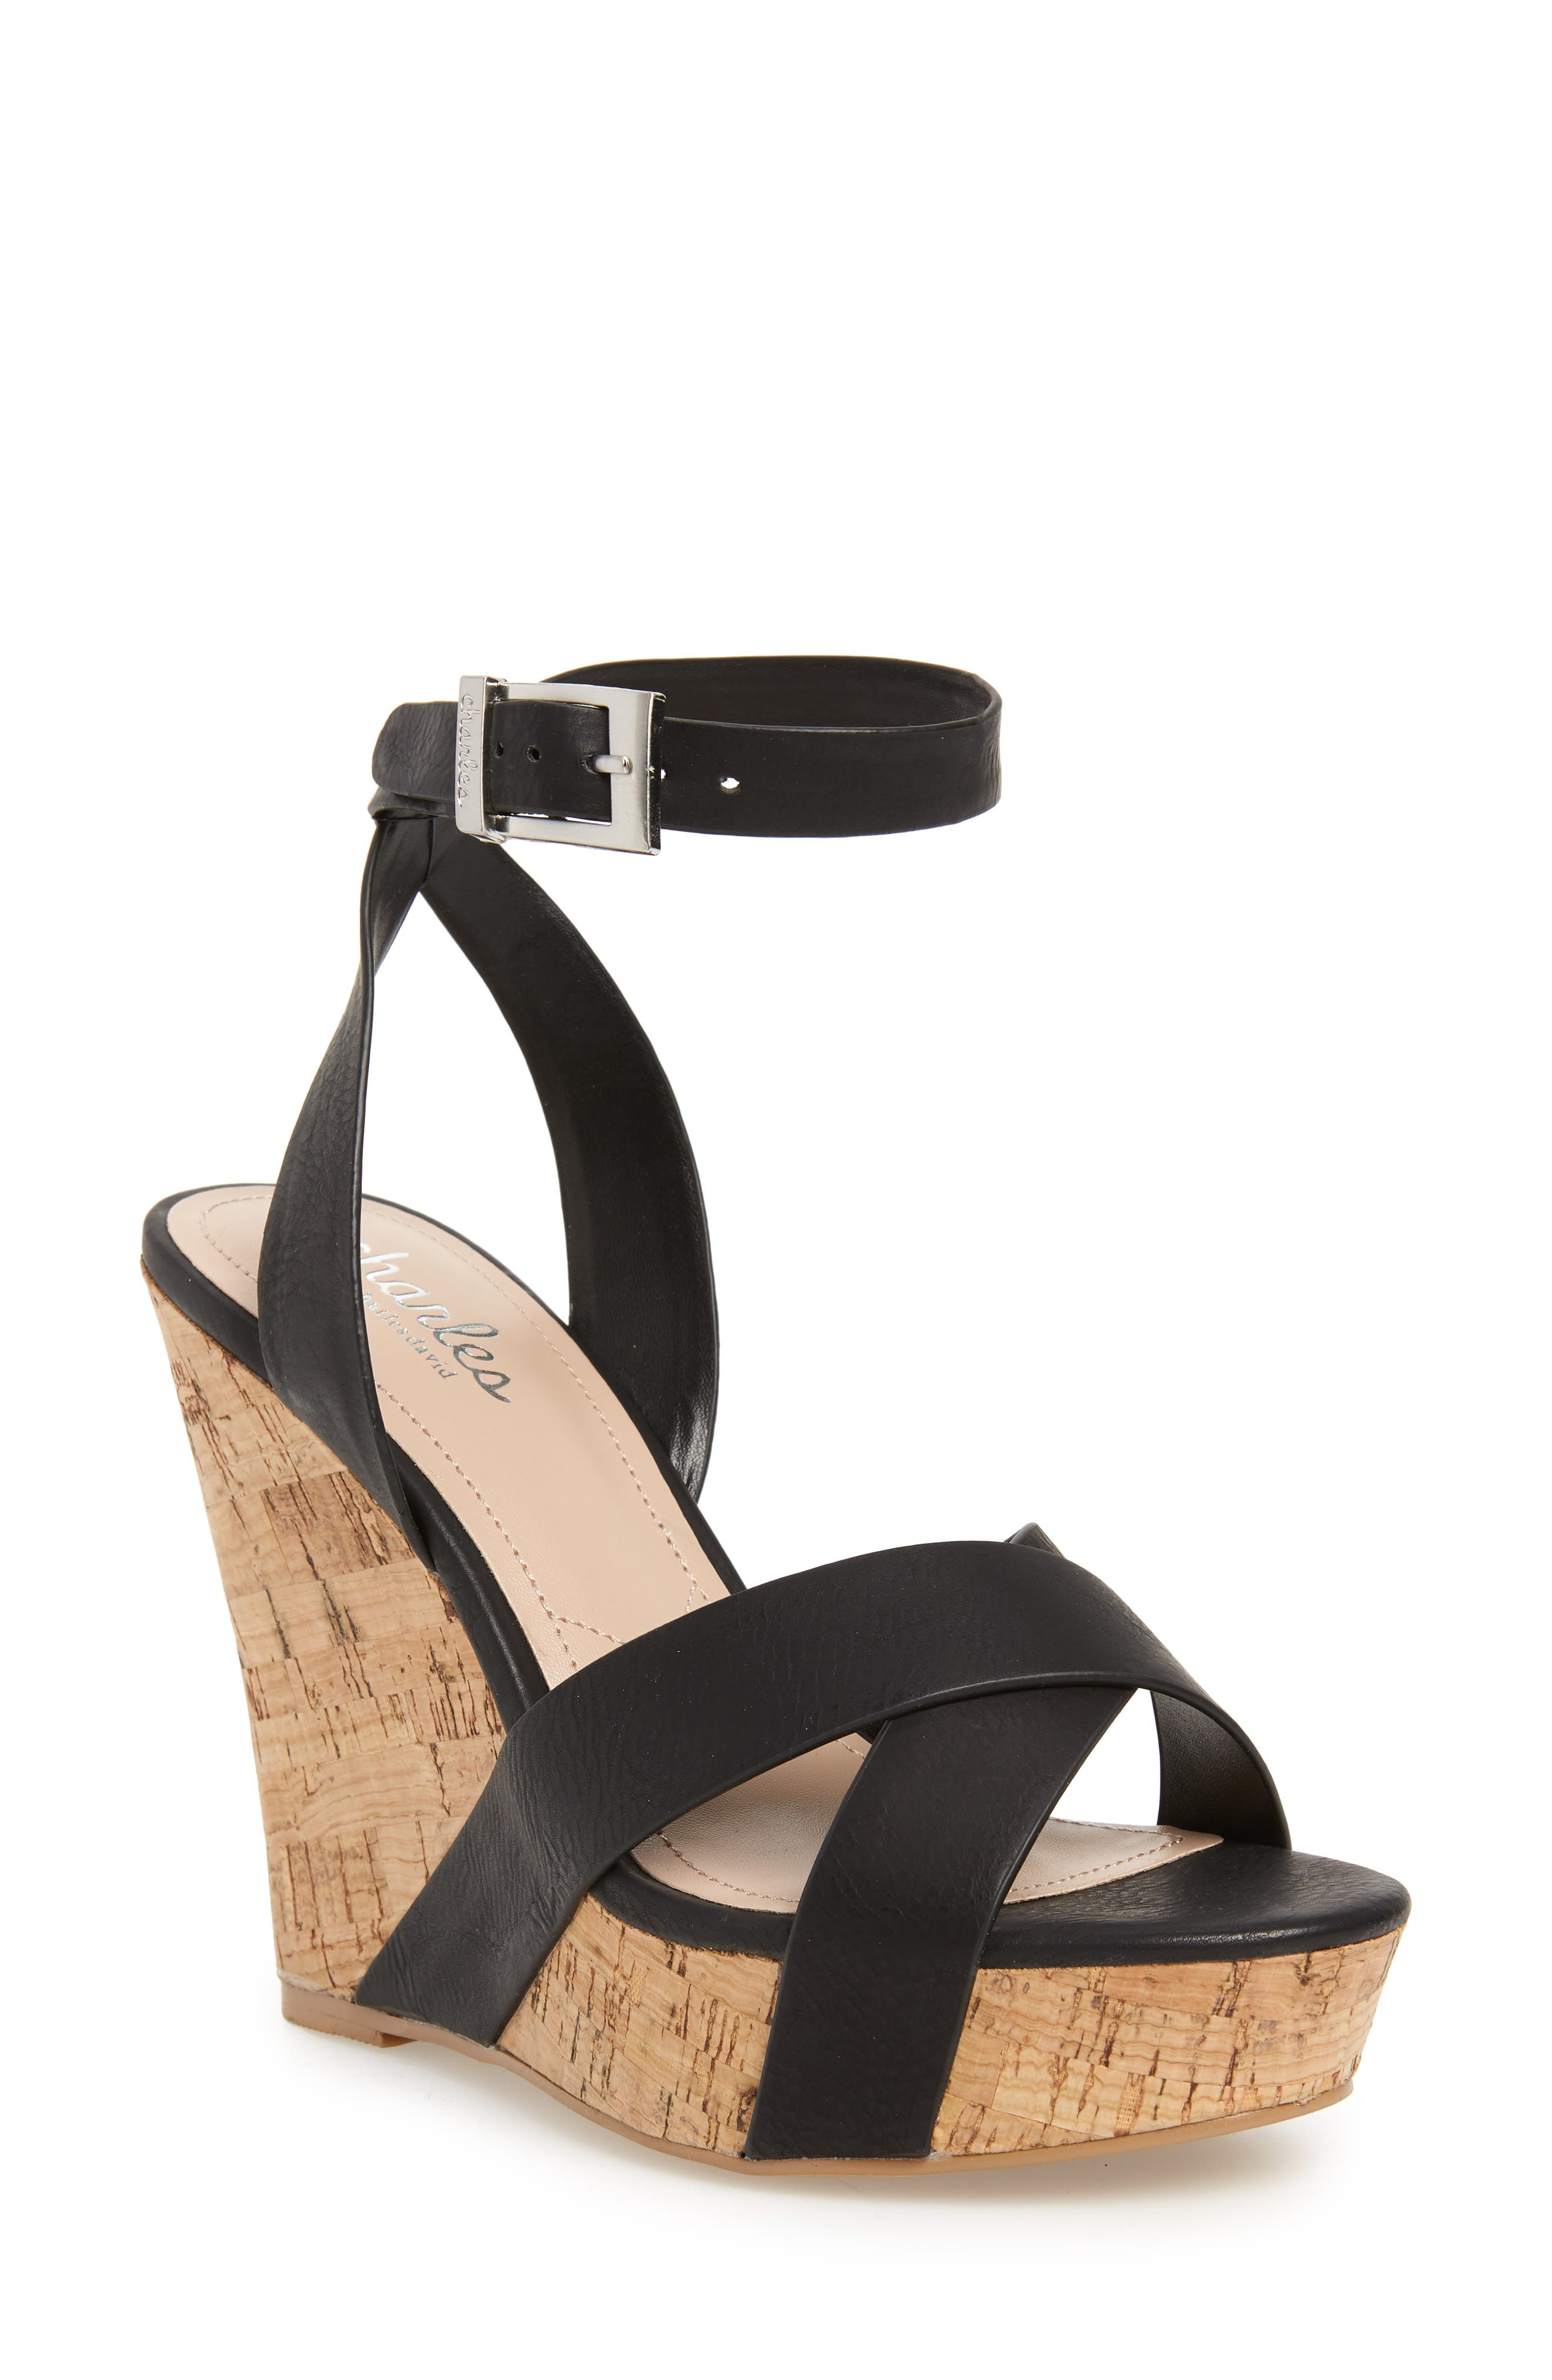 CHARLES BY CHARLES DAVID, Aleck Platform Wedge Sandal, Main thumbnail 1, color, BLACK FAUX LEATHER